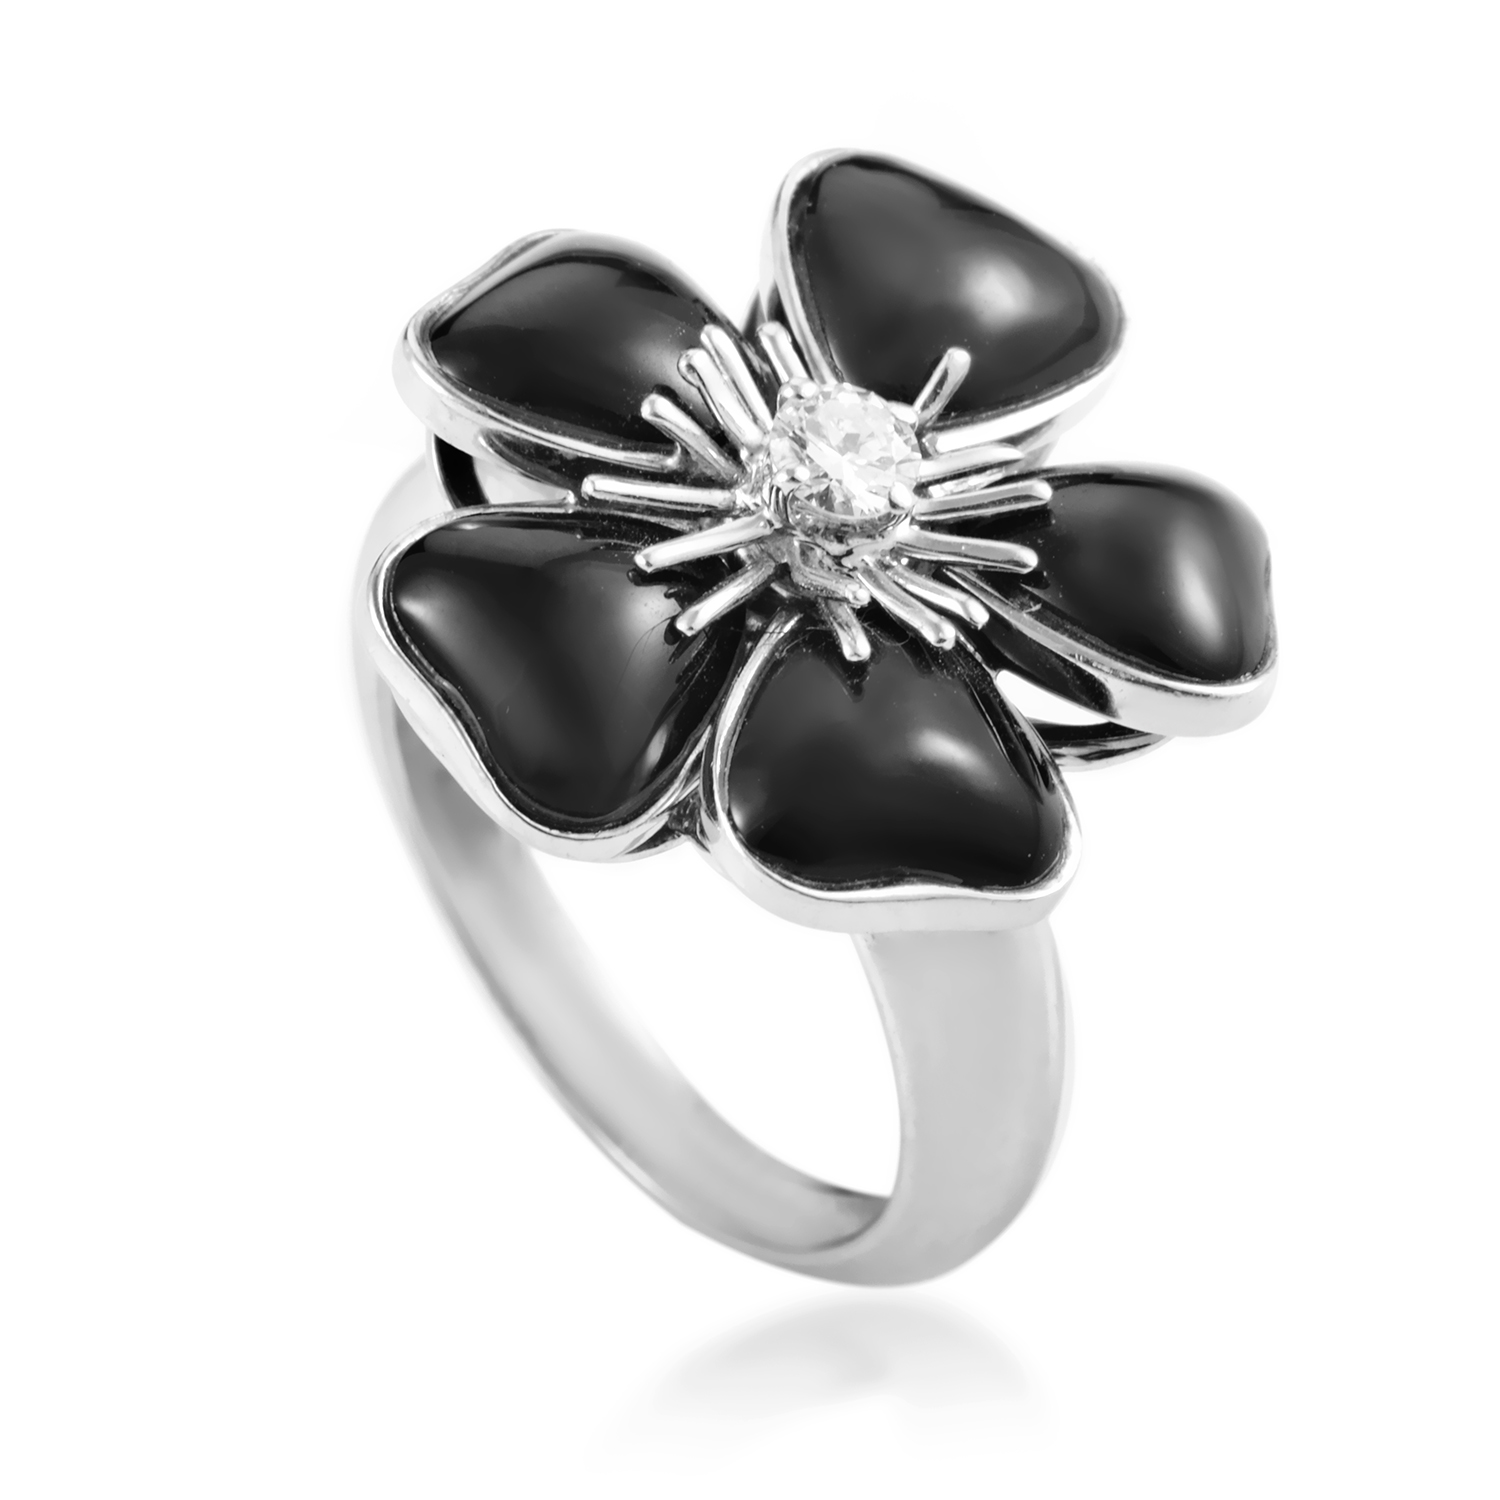 Van Cleef & Arpels Nerval 18K White Gold Onyx and Diamond Ring